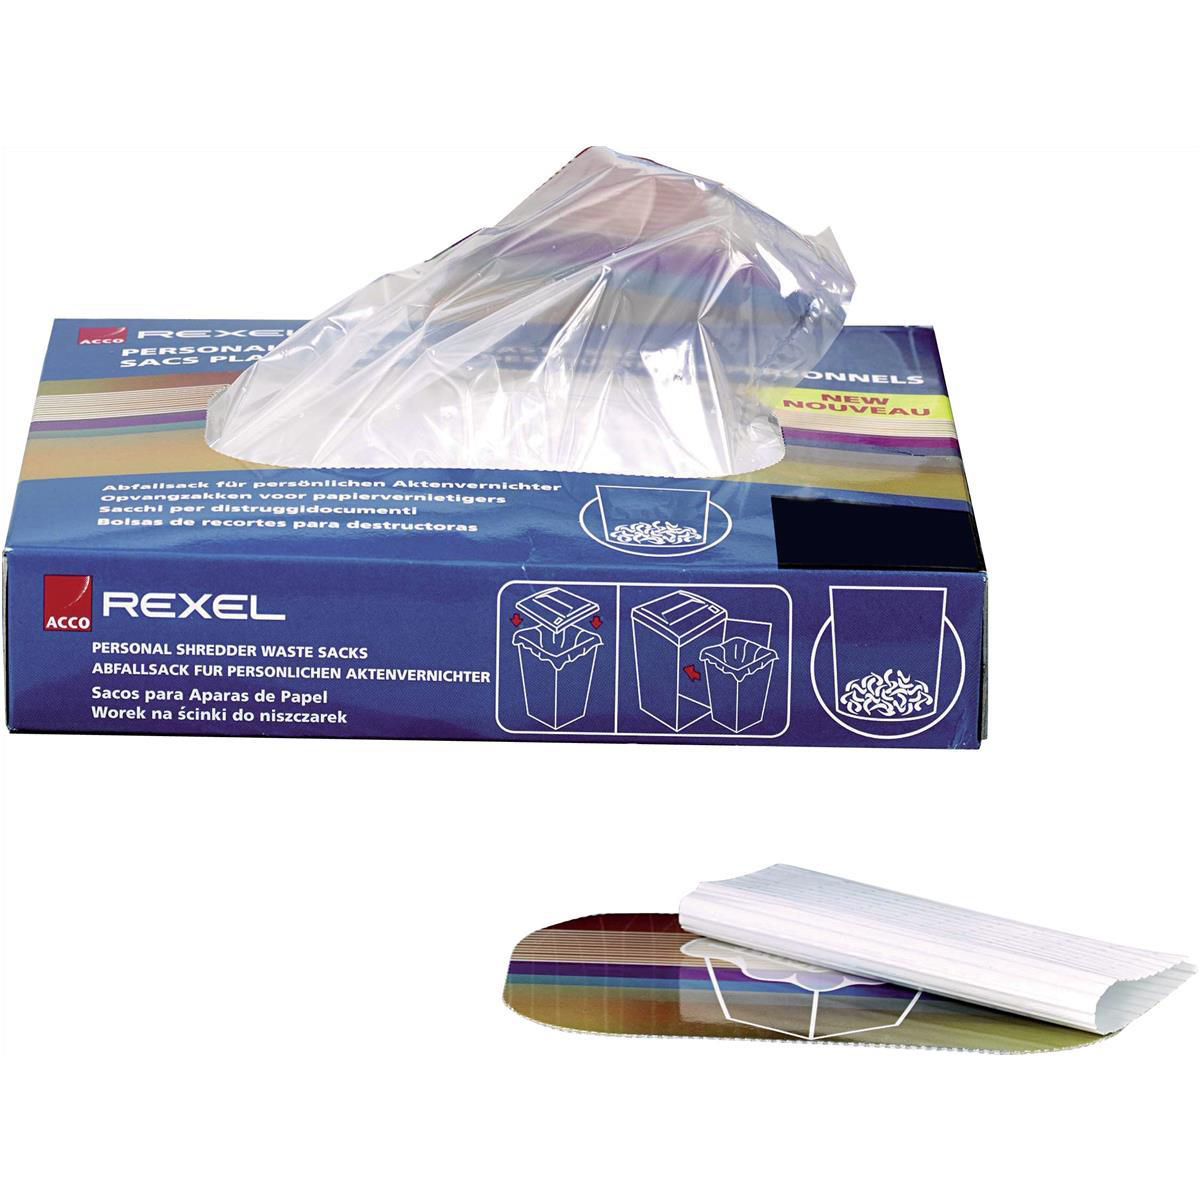 Bags / Sacks Rexel Wide Entry Shredder Waste Sacks 200 Litres Ref 40014 Pack 50